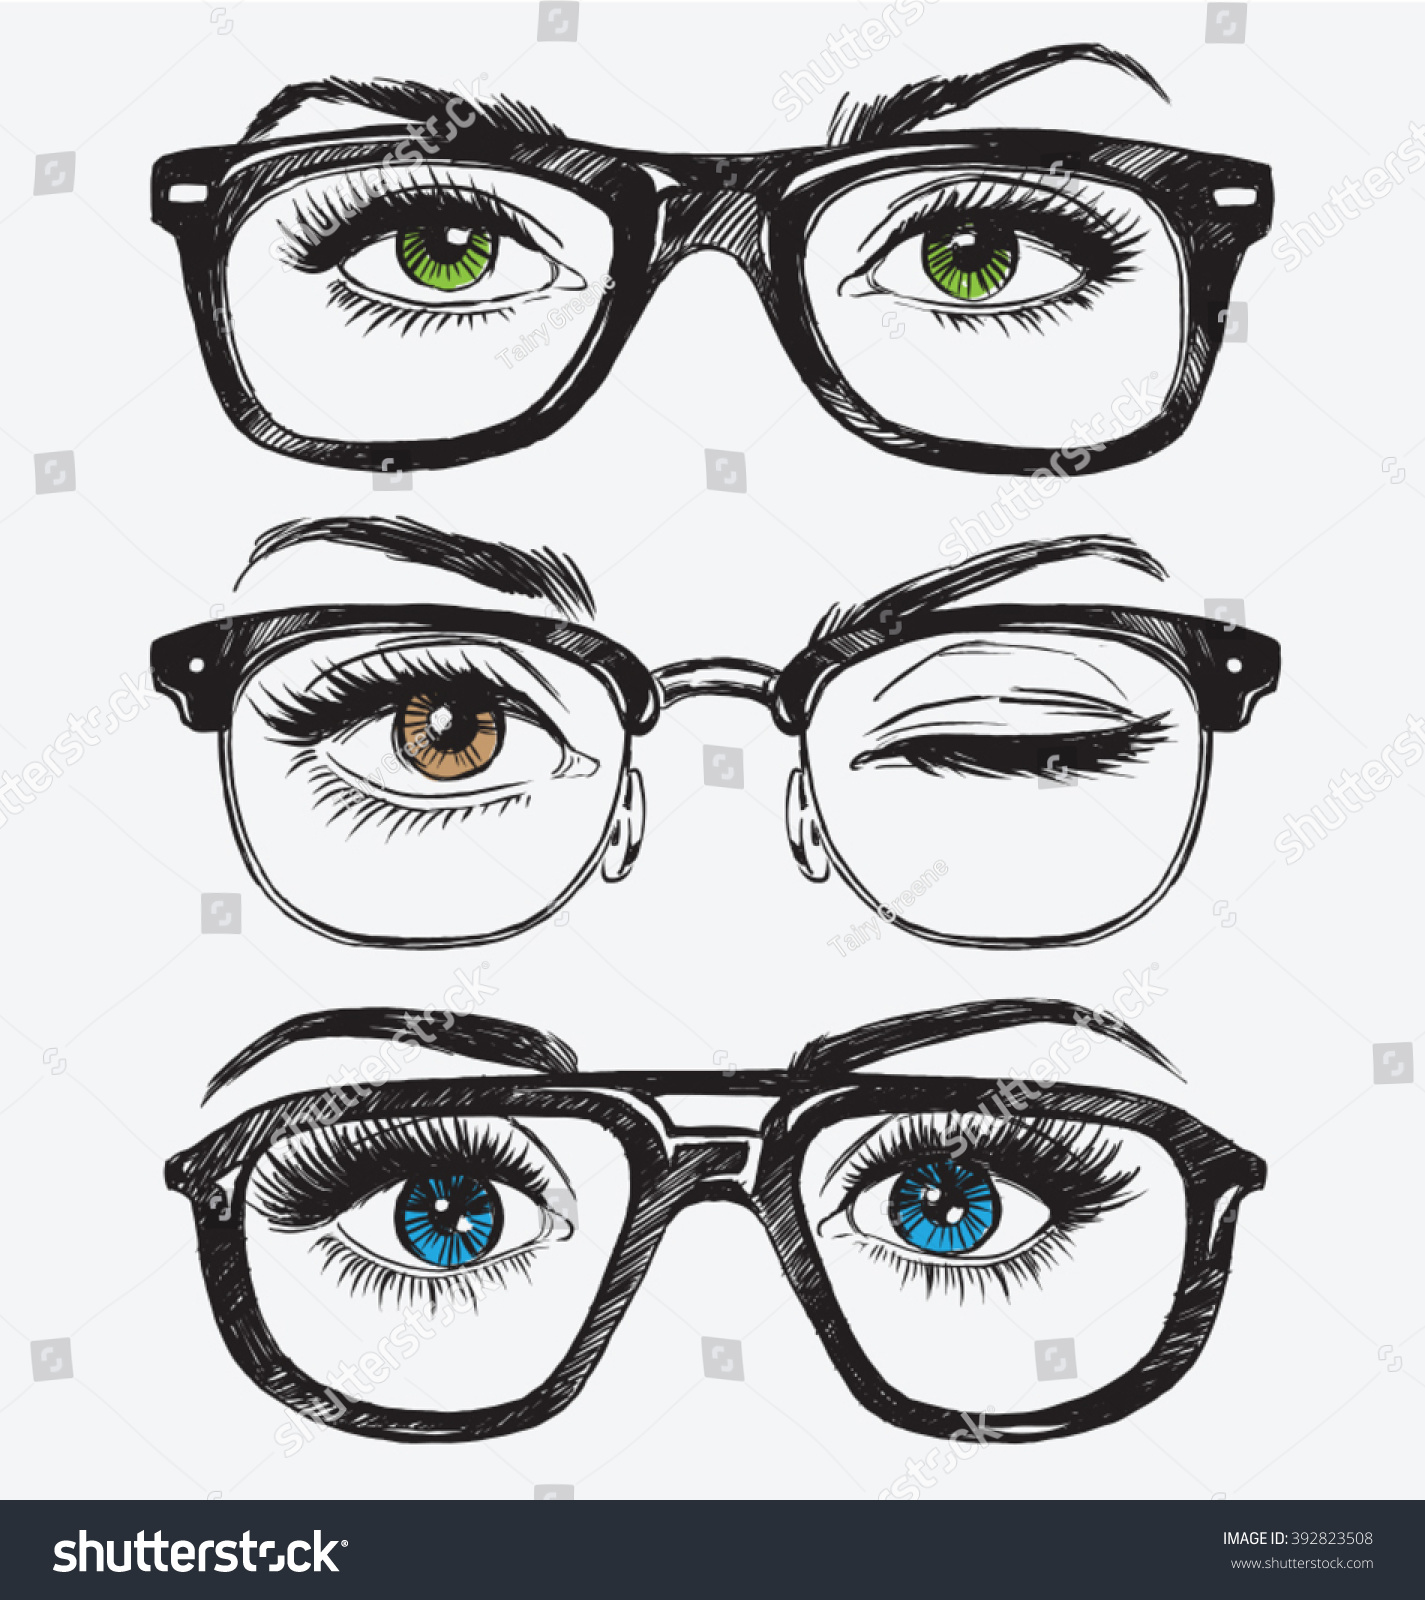 Set Of Hand Drawn Women'S Eyes With Hipster Glasses Stock ...